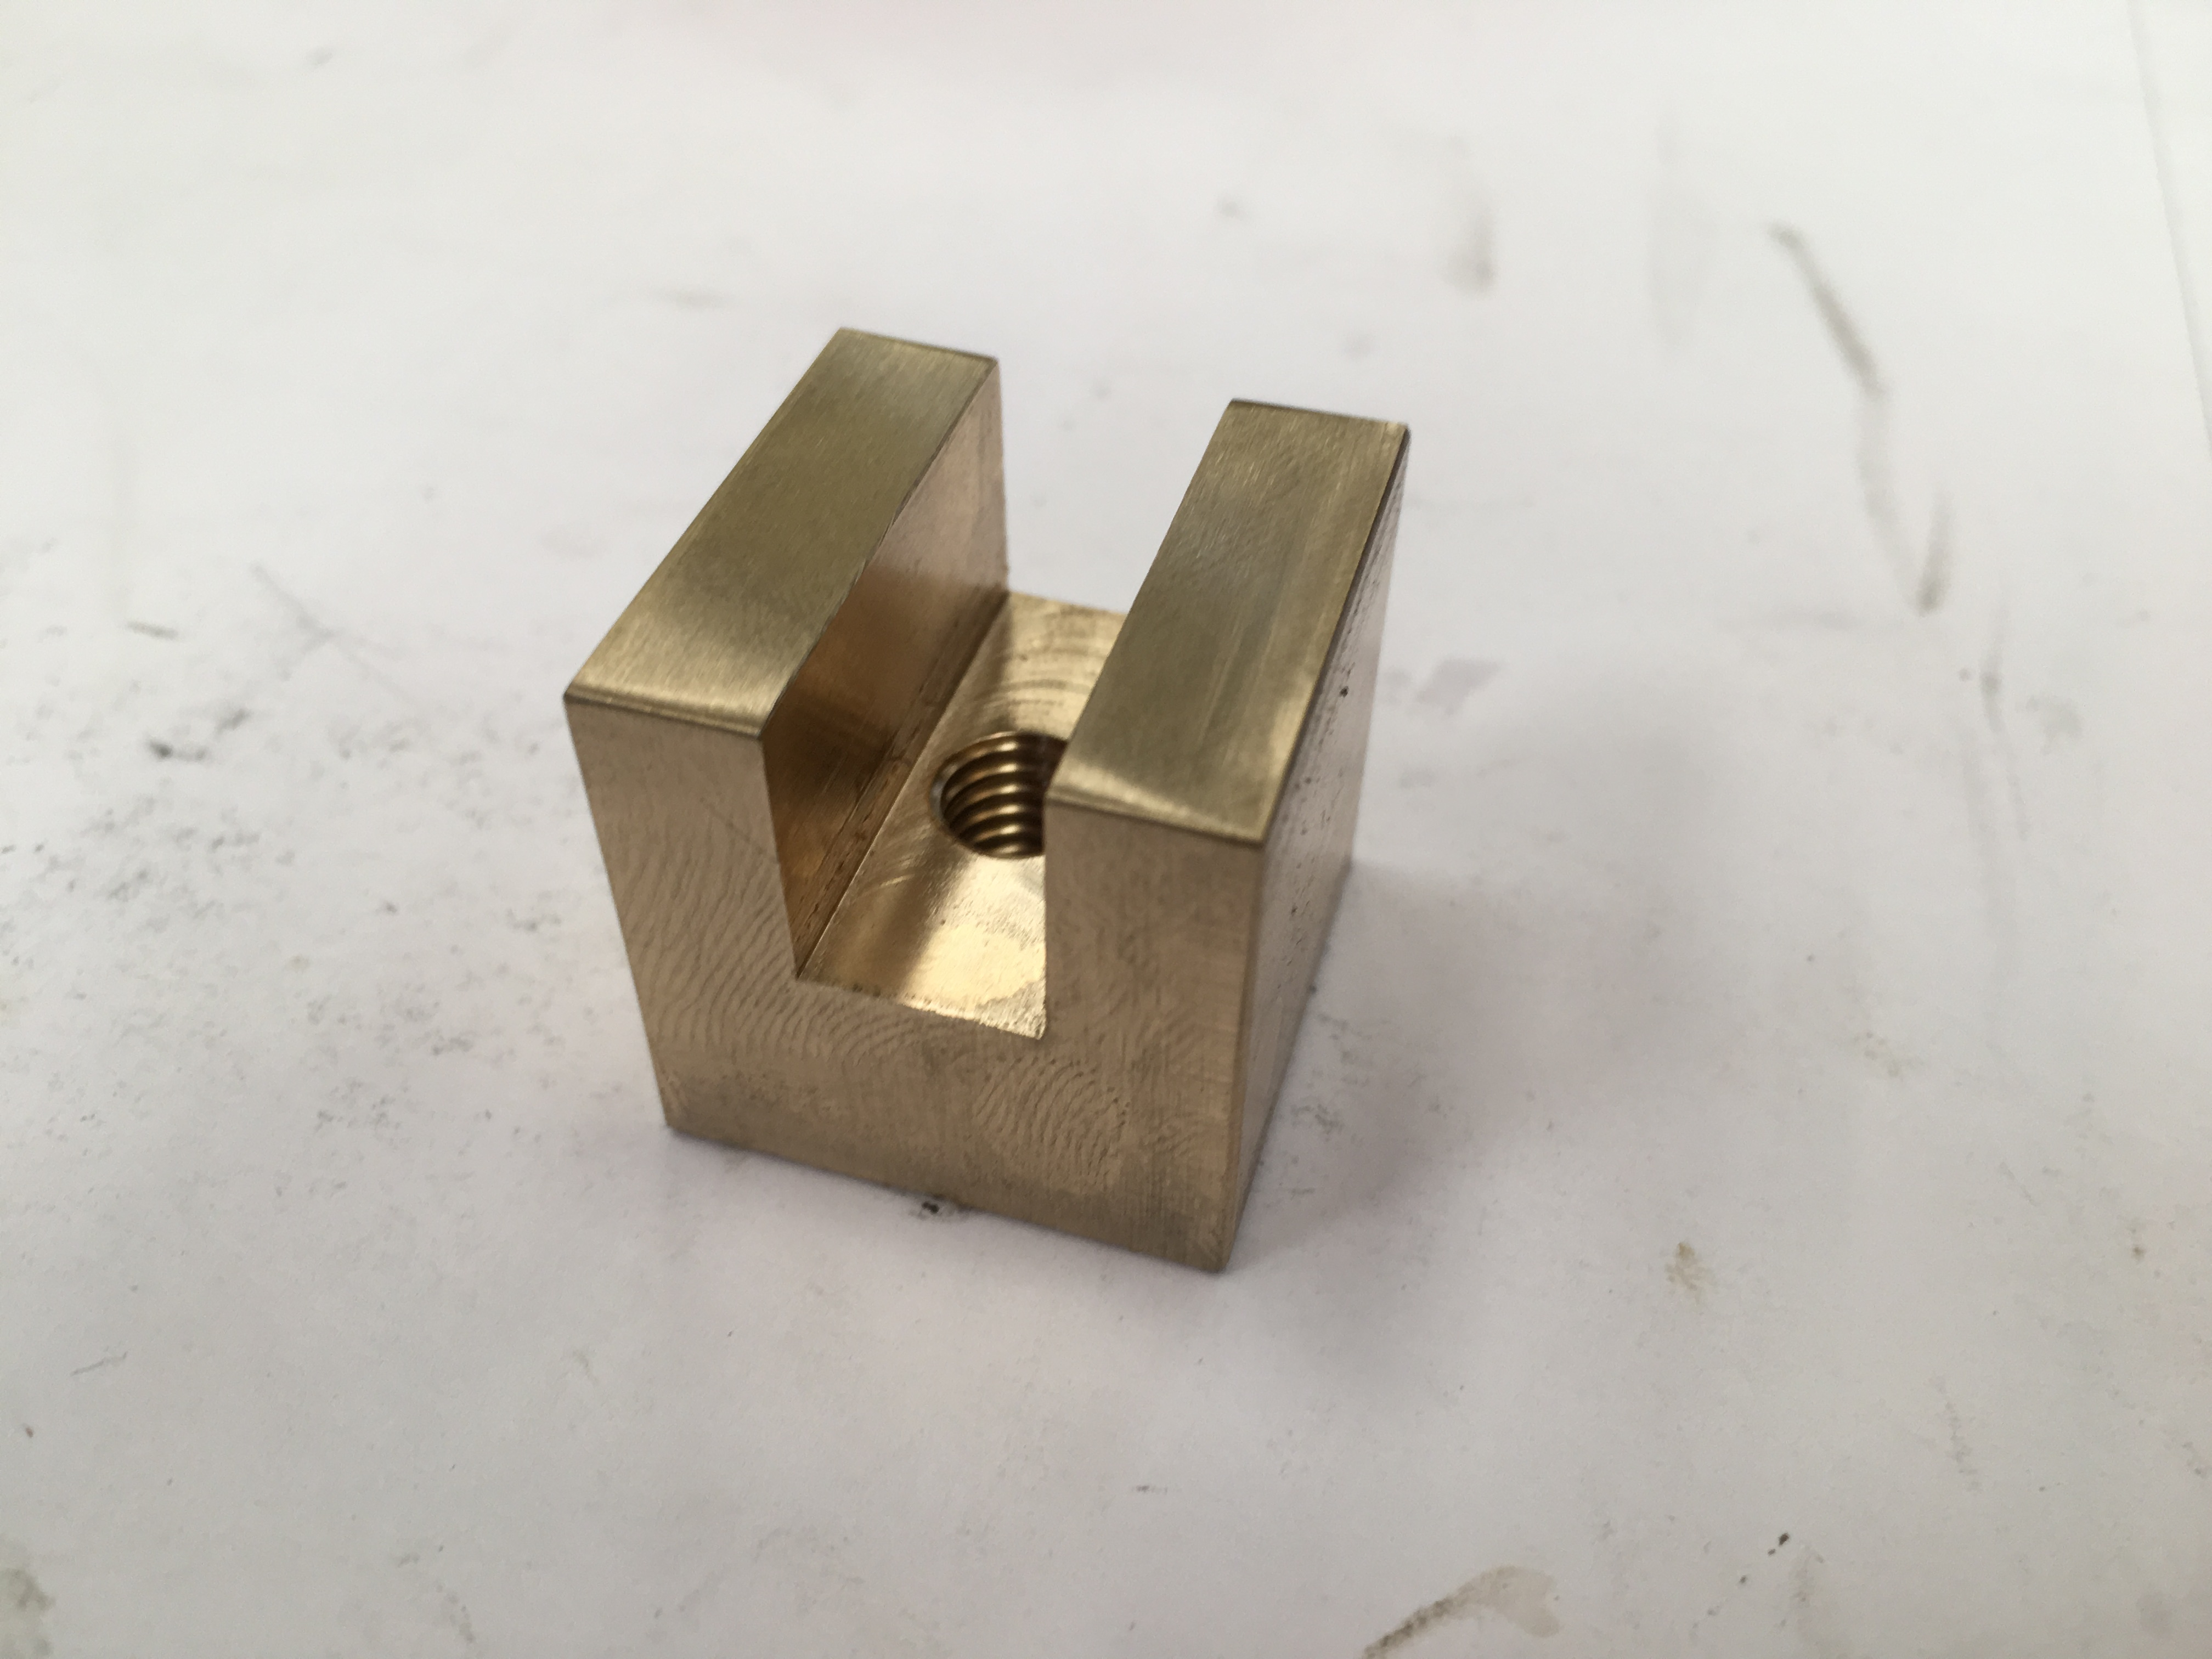 Four Brass or UHMWPE Sliders for Narrowboat Hatch